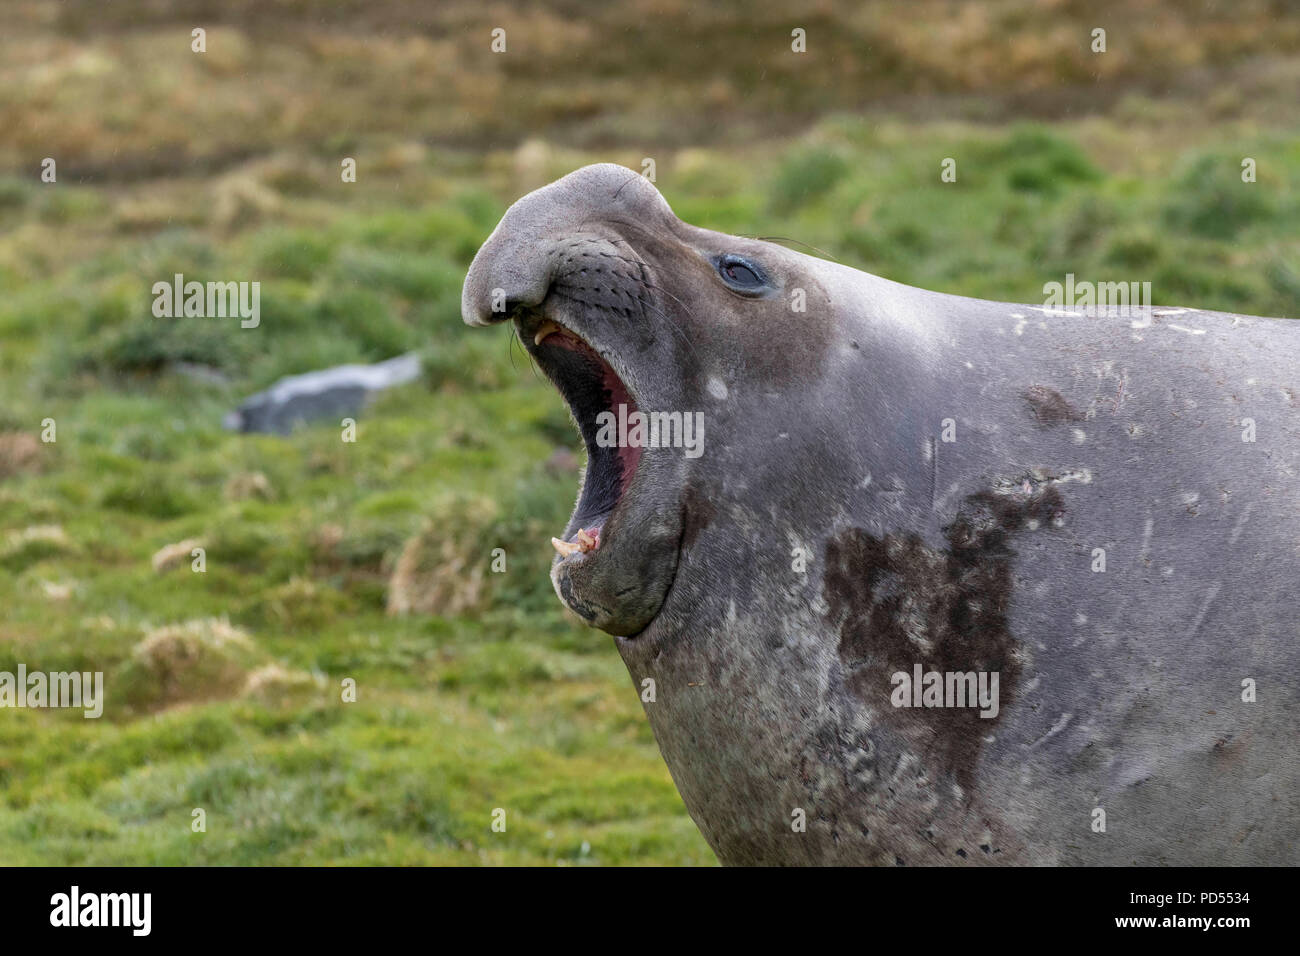 Elephant seal in the South Georgia islands - Stock Image